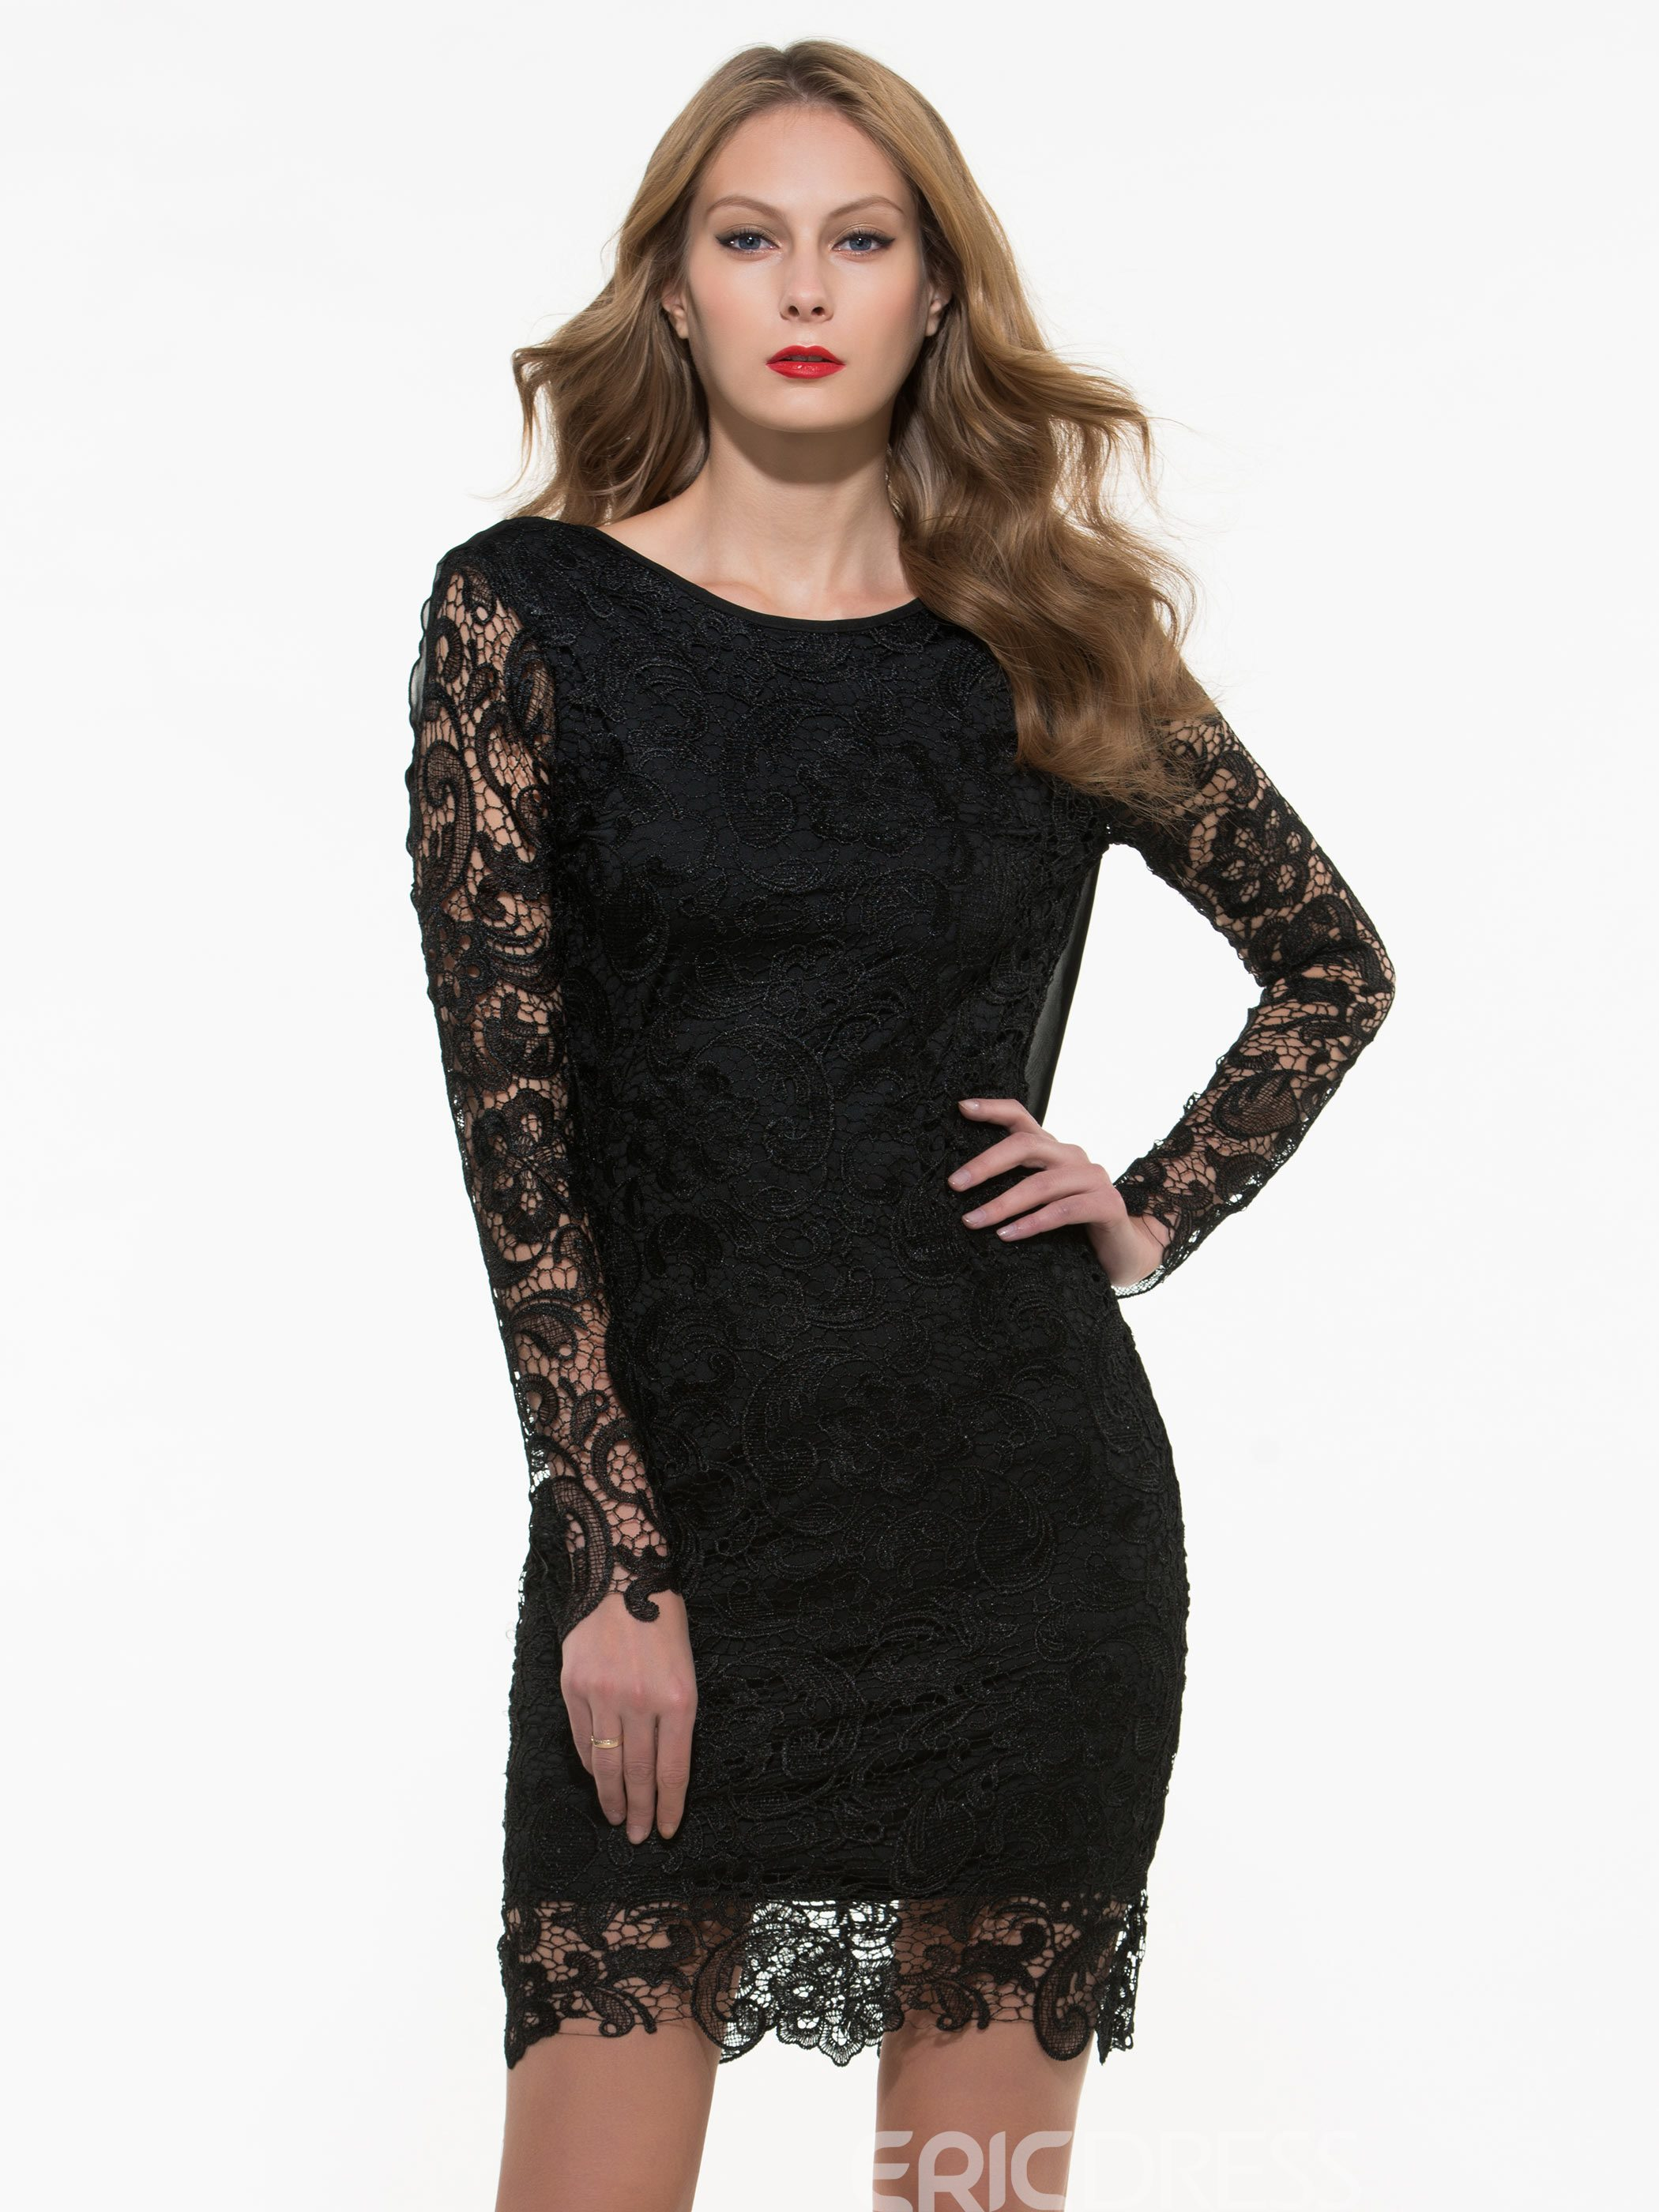 Ericdress Black Open Back Lace Dress 10969444 Ericdress Com